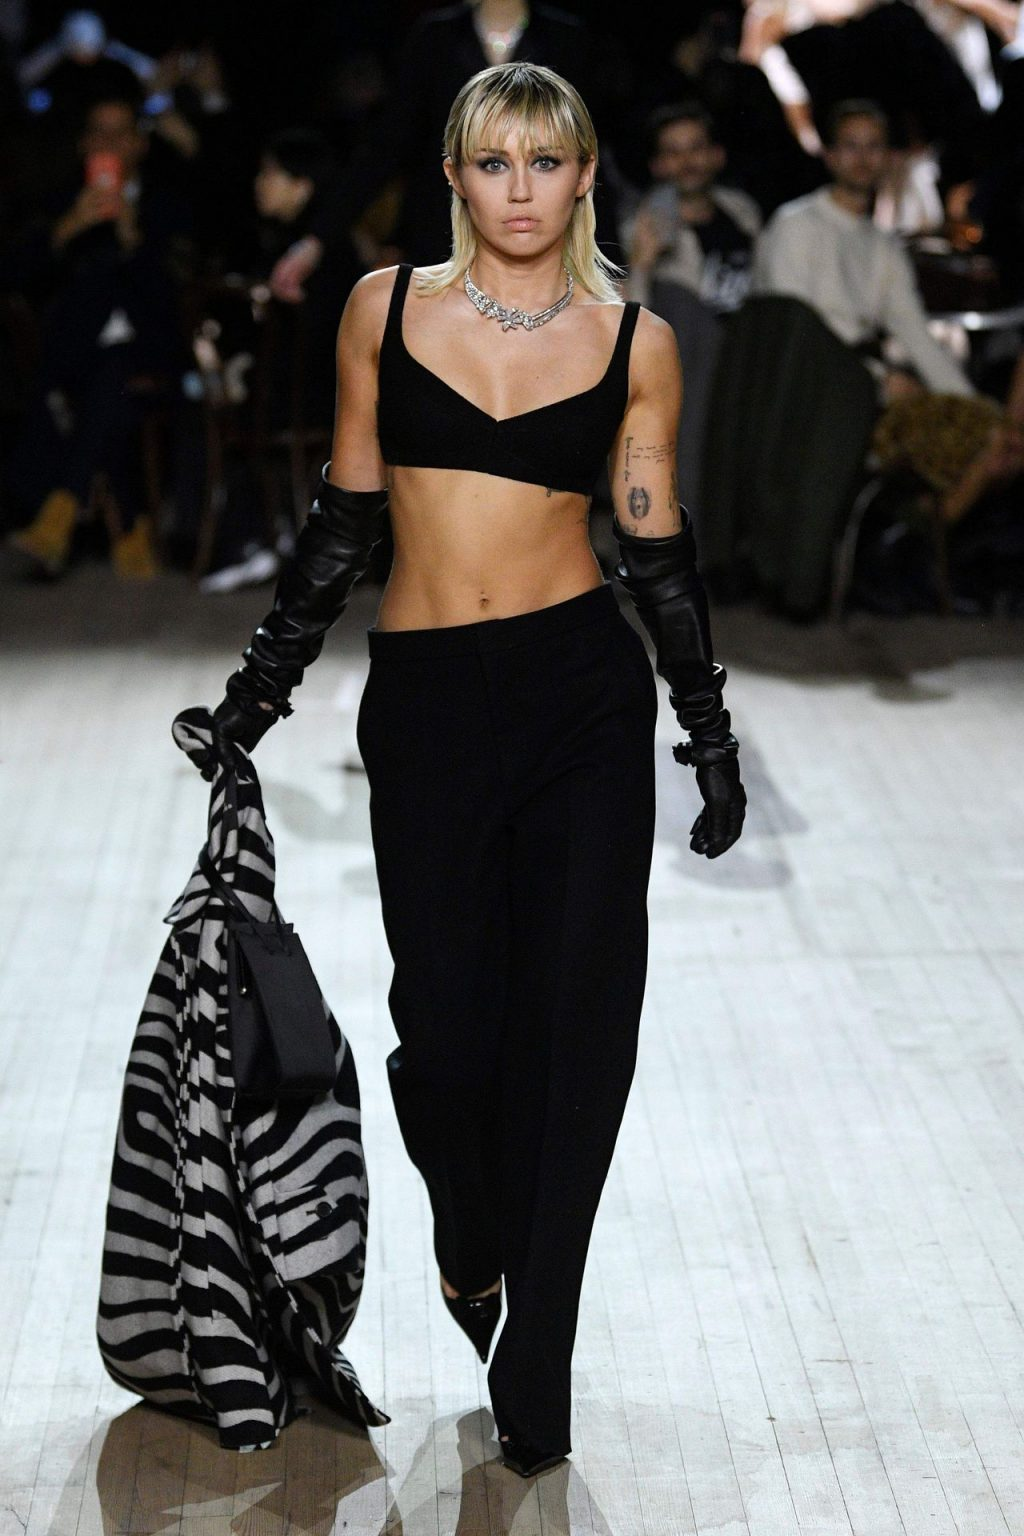 Miley Cyrus Sexy The Fappening Blog 11 4 1024x1536 - Miley Cyrus Walks the Runway at the Marc Jacobs Show (22 Photos + GIF & Video)